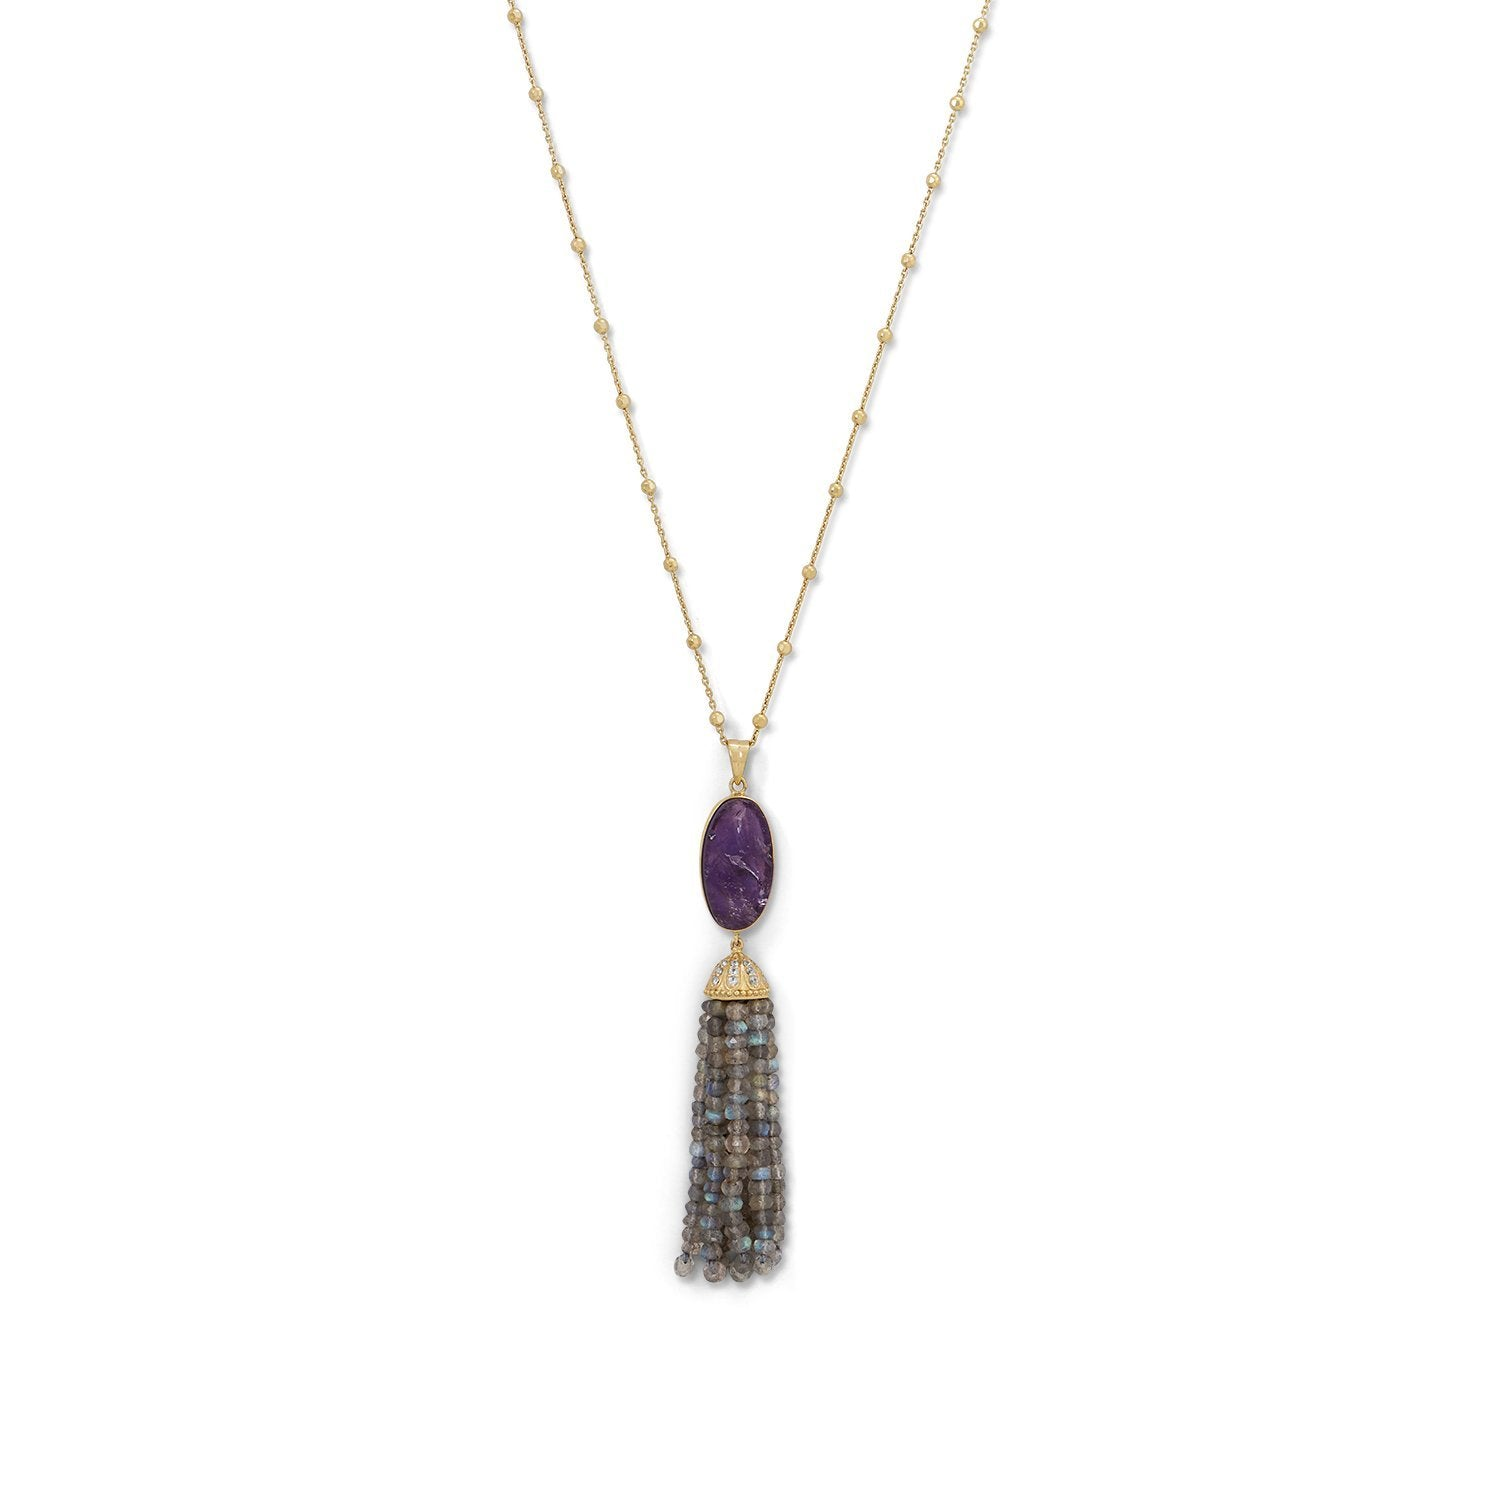 18K Gold Amethyst & Labradorite Tassel Necklace